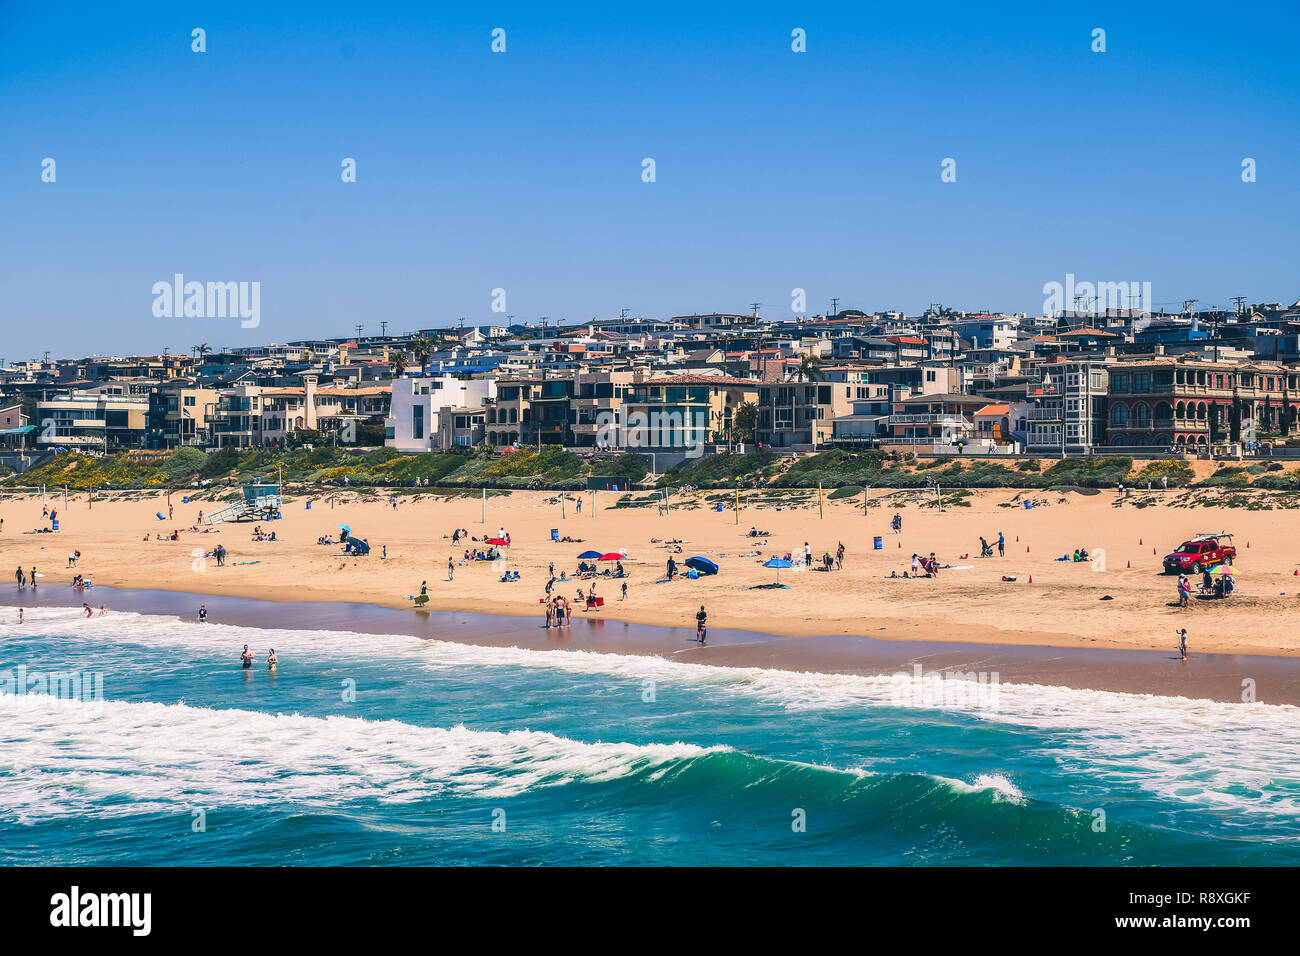 View Of Manhattan Beach In Los Angeles California During A Sunny Day Stock Photo Alamy